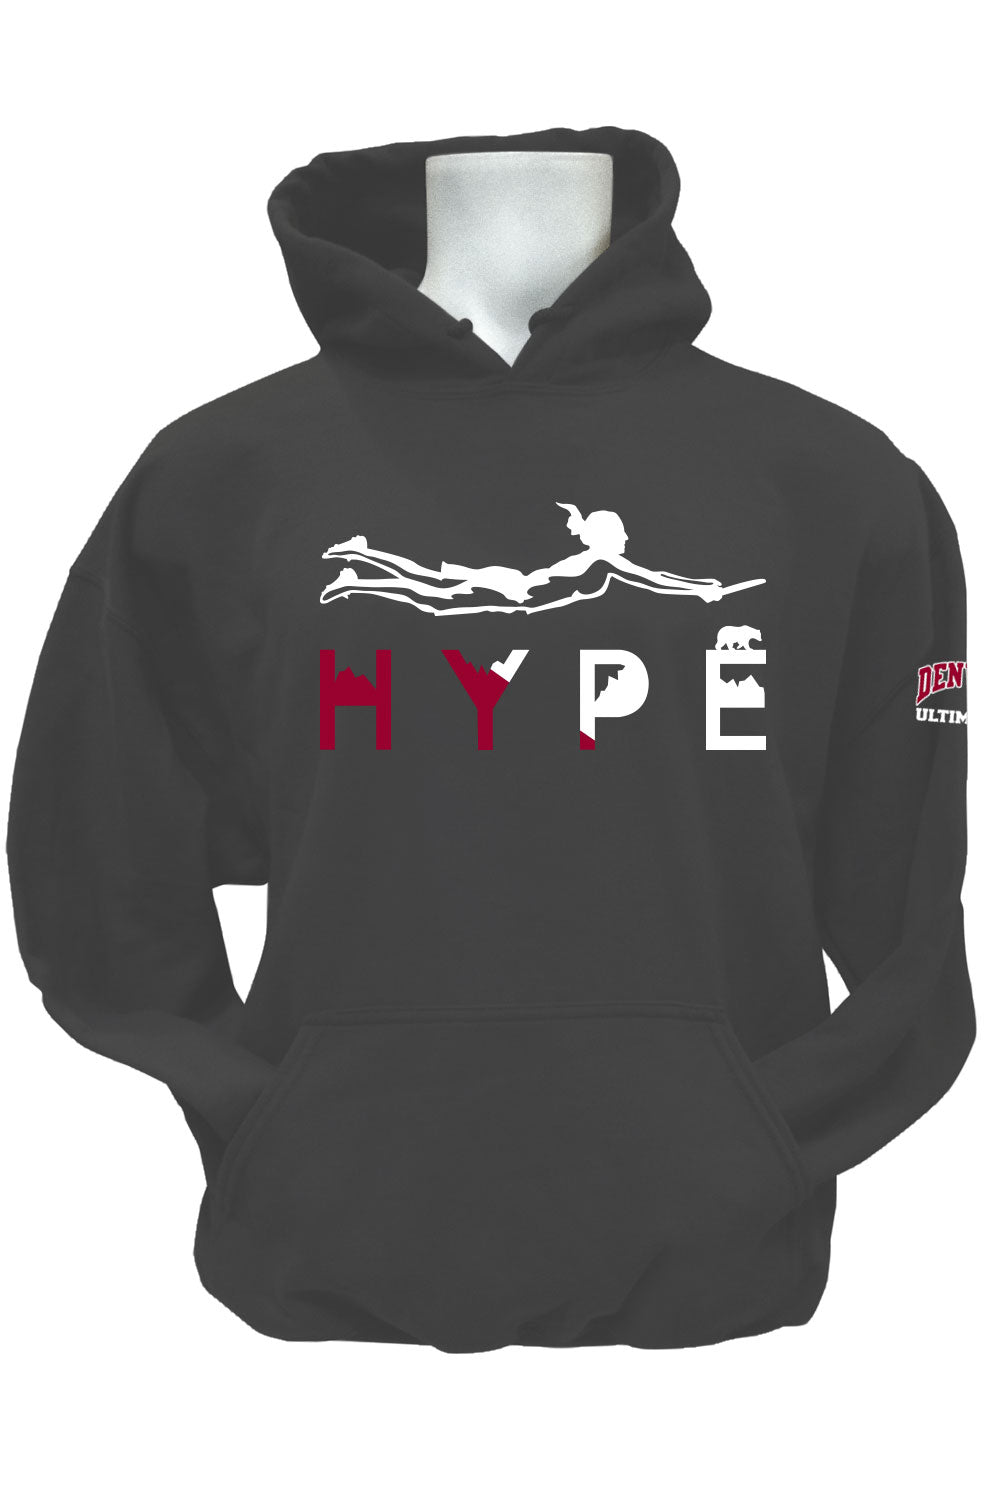 Denver Hype Fleece Pullover Hoodie (Charcoal)